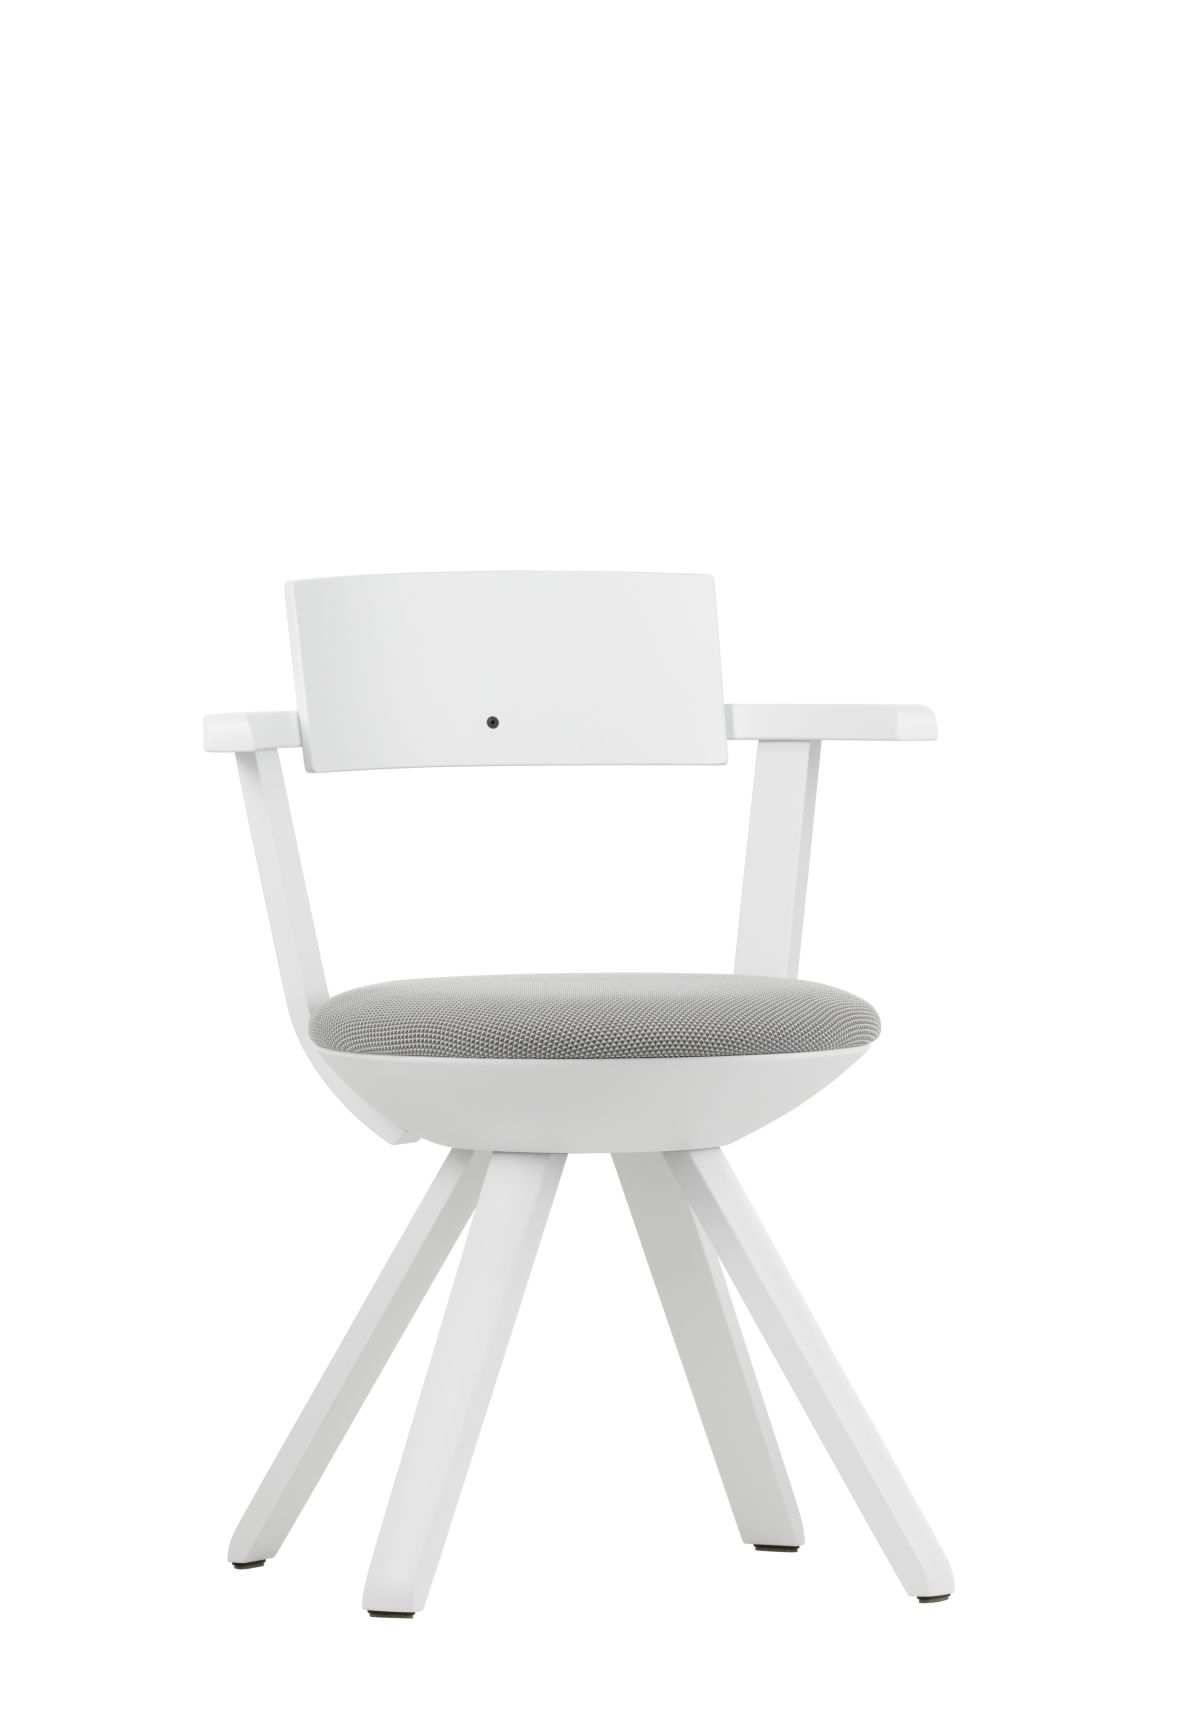 Rival Chair KG002 white lacquer